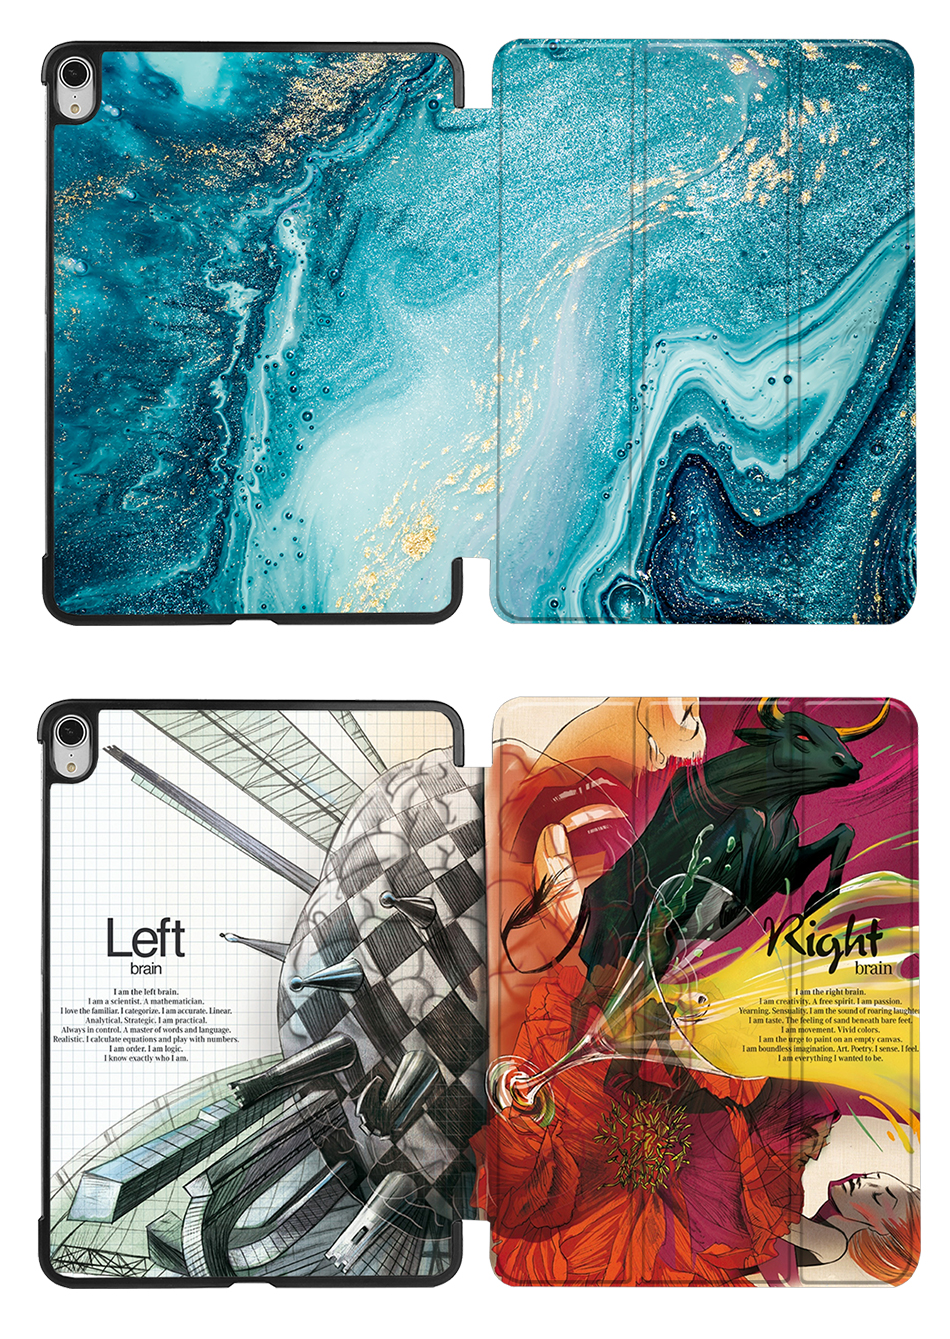 Pro inch iPad Sanmubaba 4th Cover Generation Air Magnetic Leather Case PU Slim For 2020 10.9